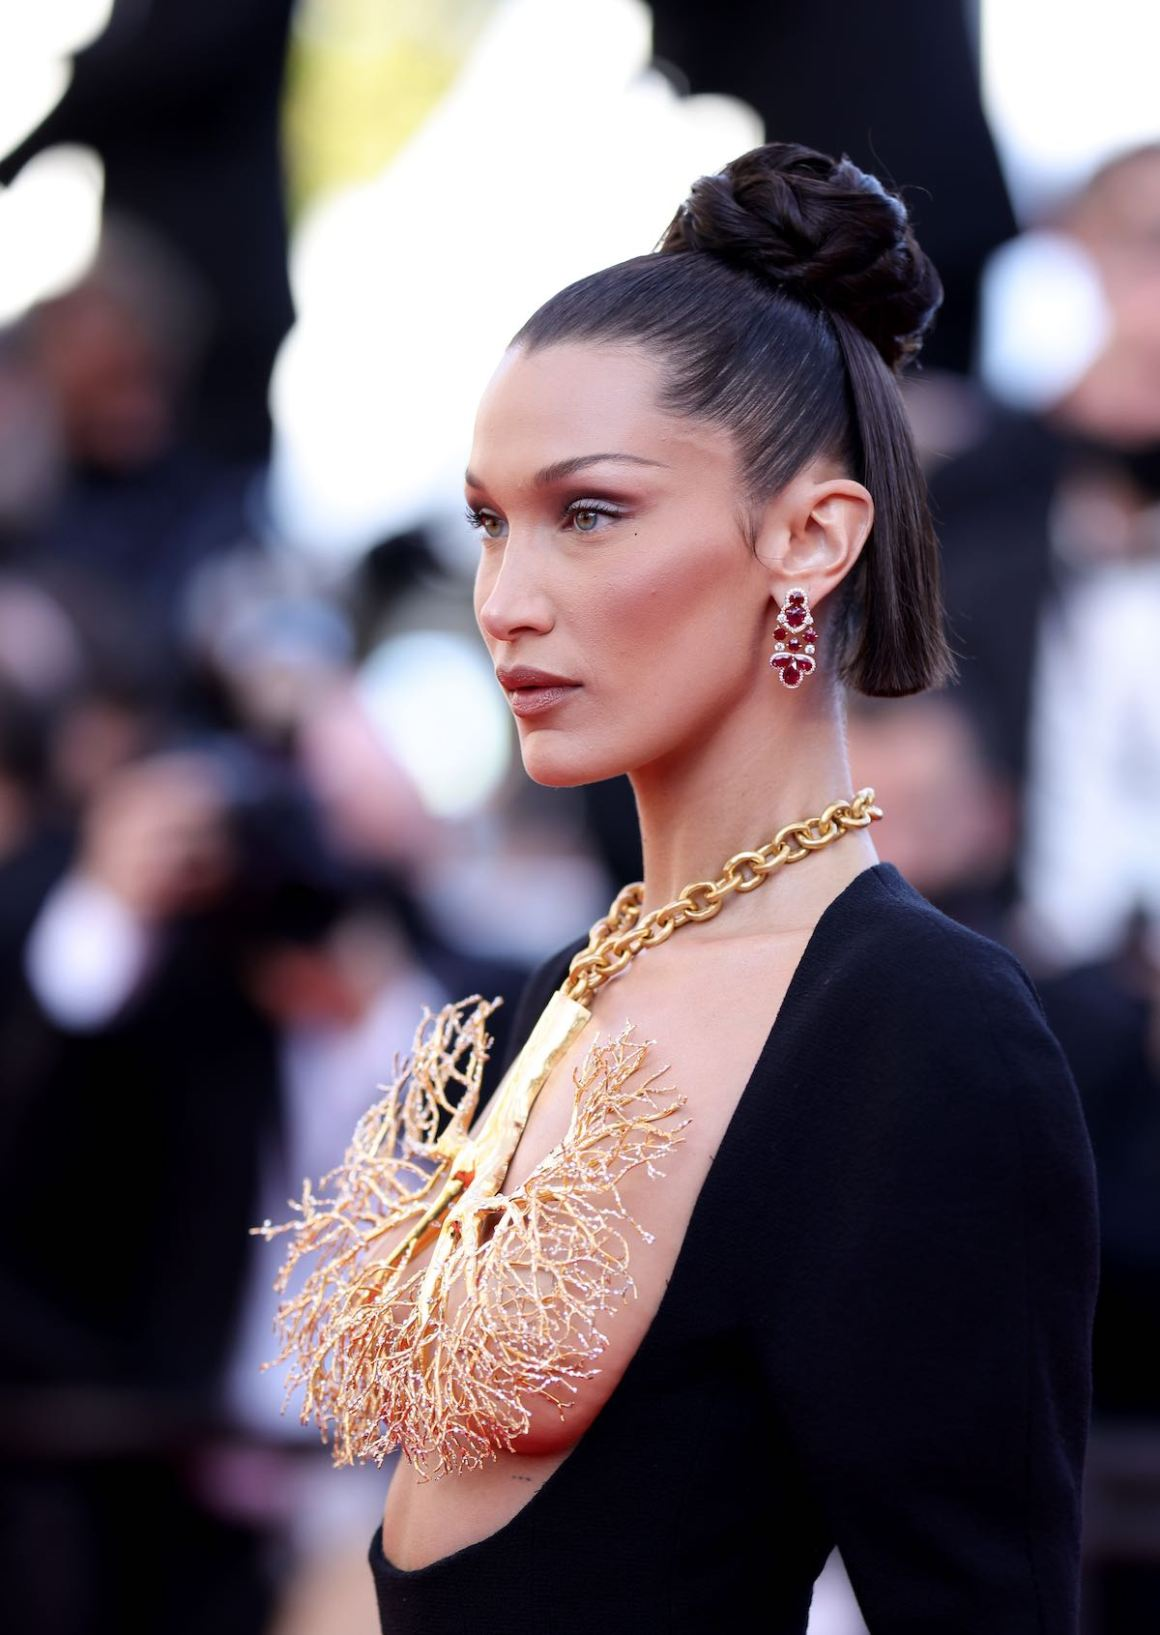 """Bella Hadid attends the """"Tre Piani (Three Floors)"""" screening during the 74th annual Cannes Film Festival on July 11, 2021 in Cannes, France."""